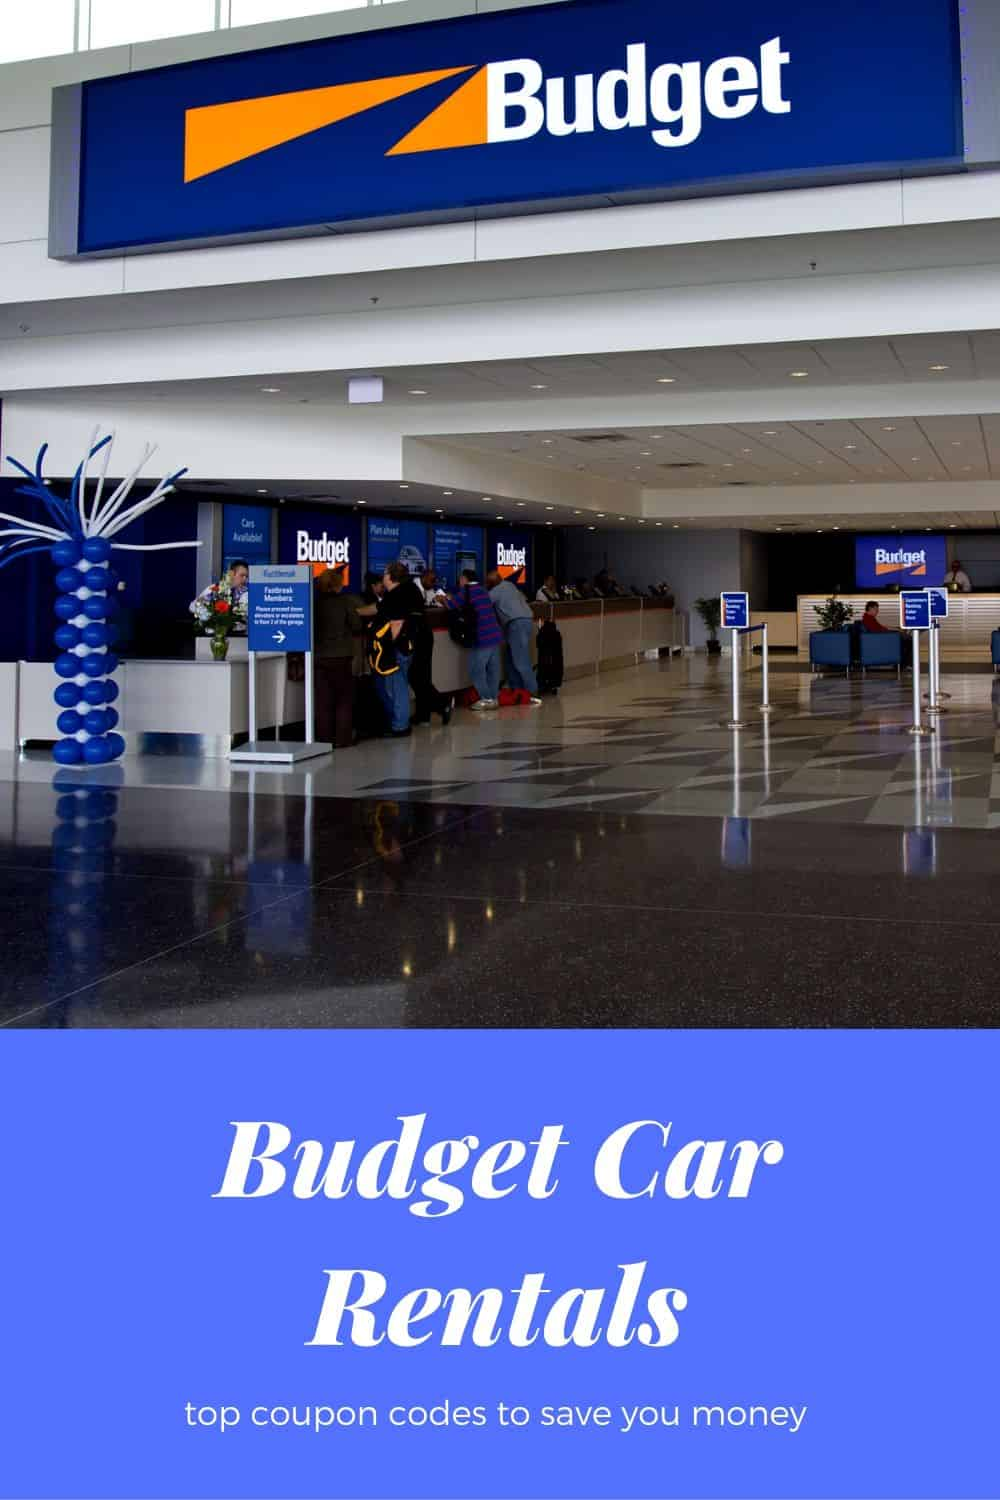 The Best Budget BCD Codes To Save Money on Car Rentals in 2020